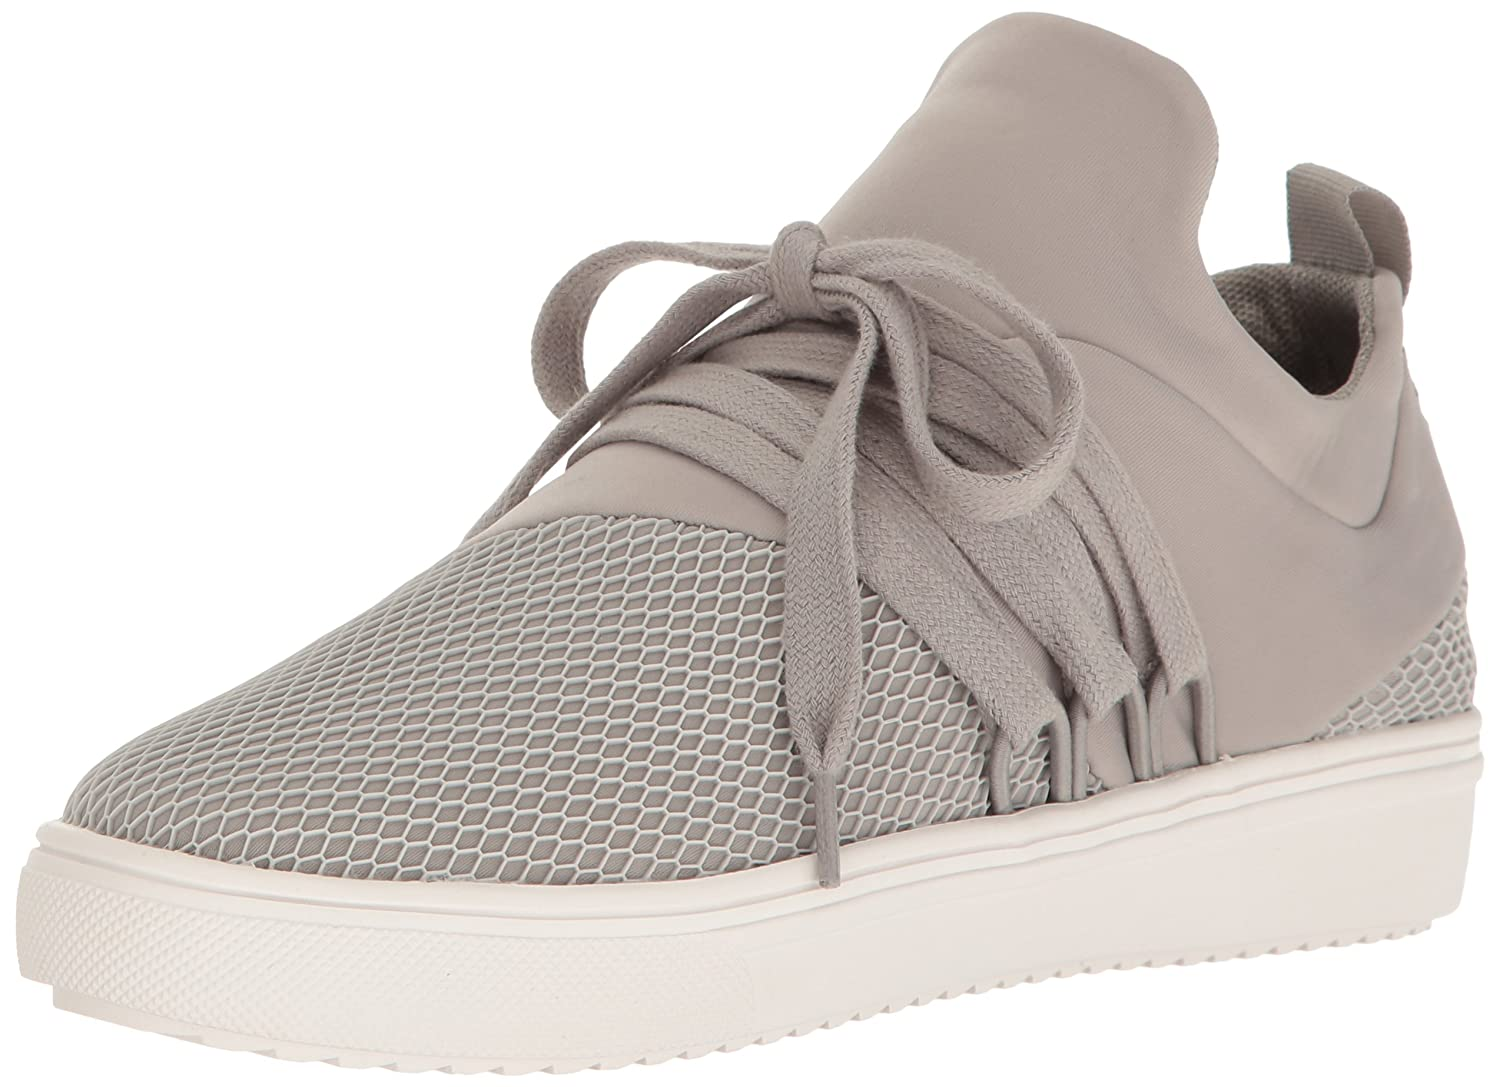 Steve Madden Women's Lancer Fashion Sneaker B06XHTJB2V 8.5 B(M) US|Grey